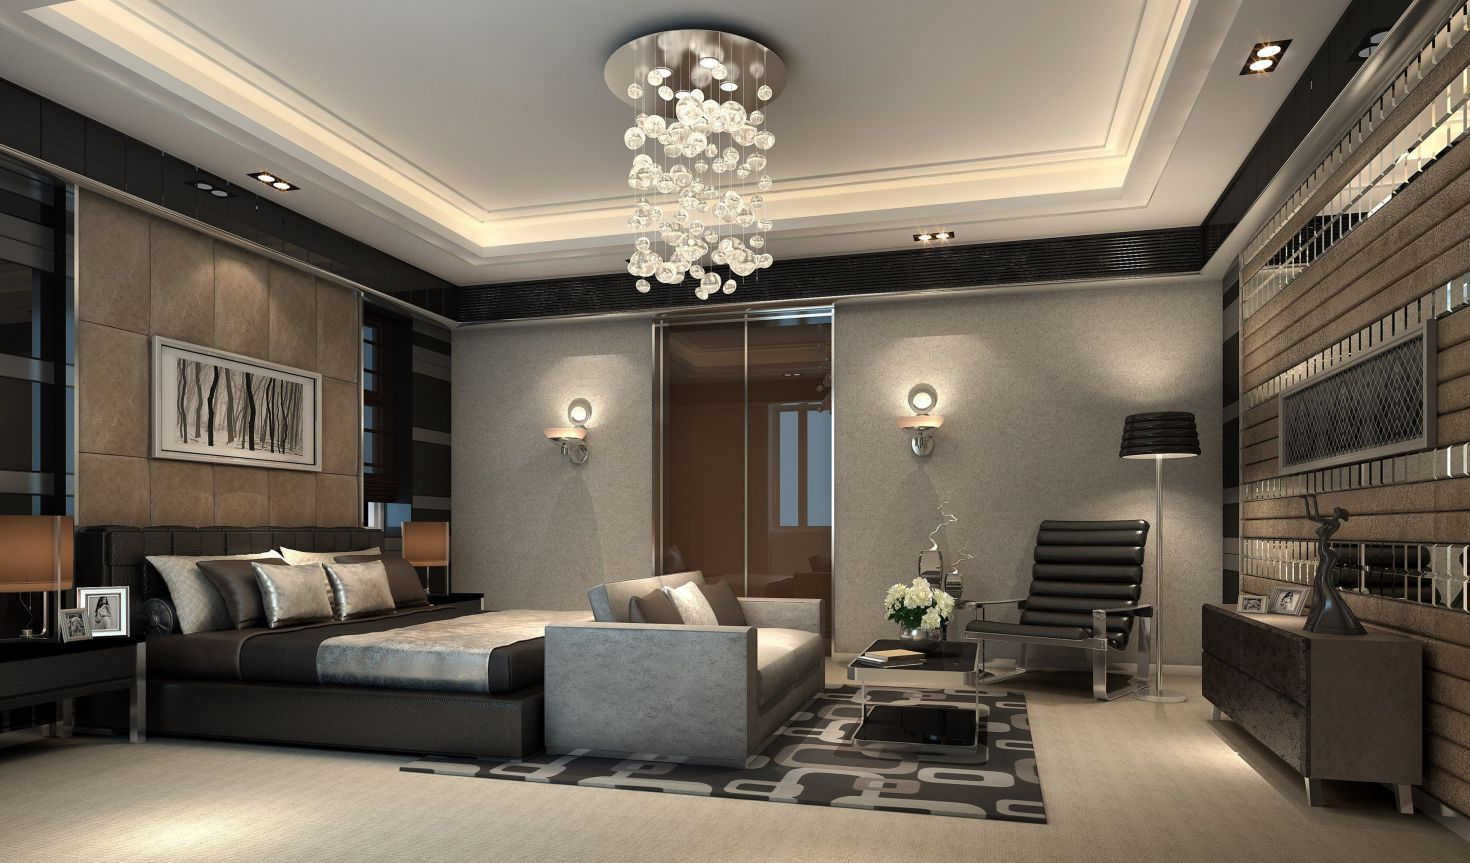 Luxury Bedroom Design Ideas With Beautiful Furniture Luxurybedroomdesign Luxury Bedroom Master Luxurious Bedrooms French Style Bedroom